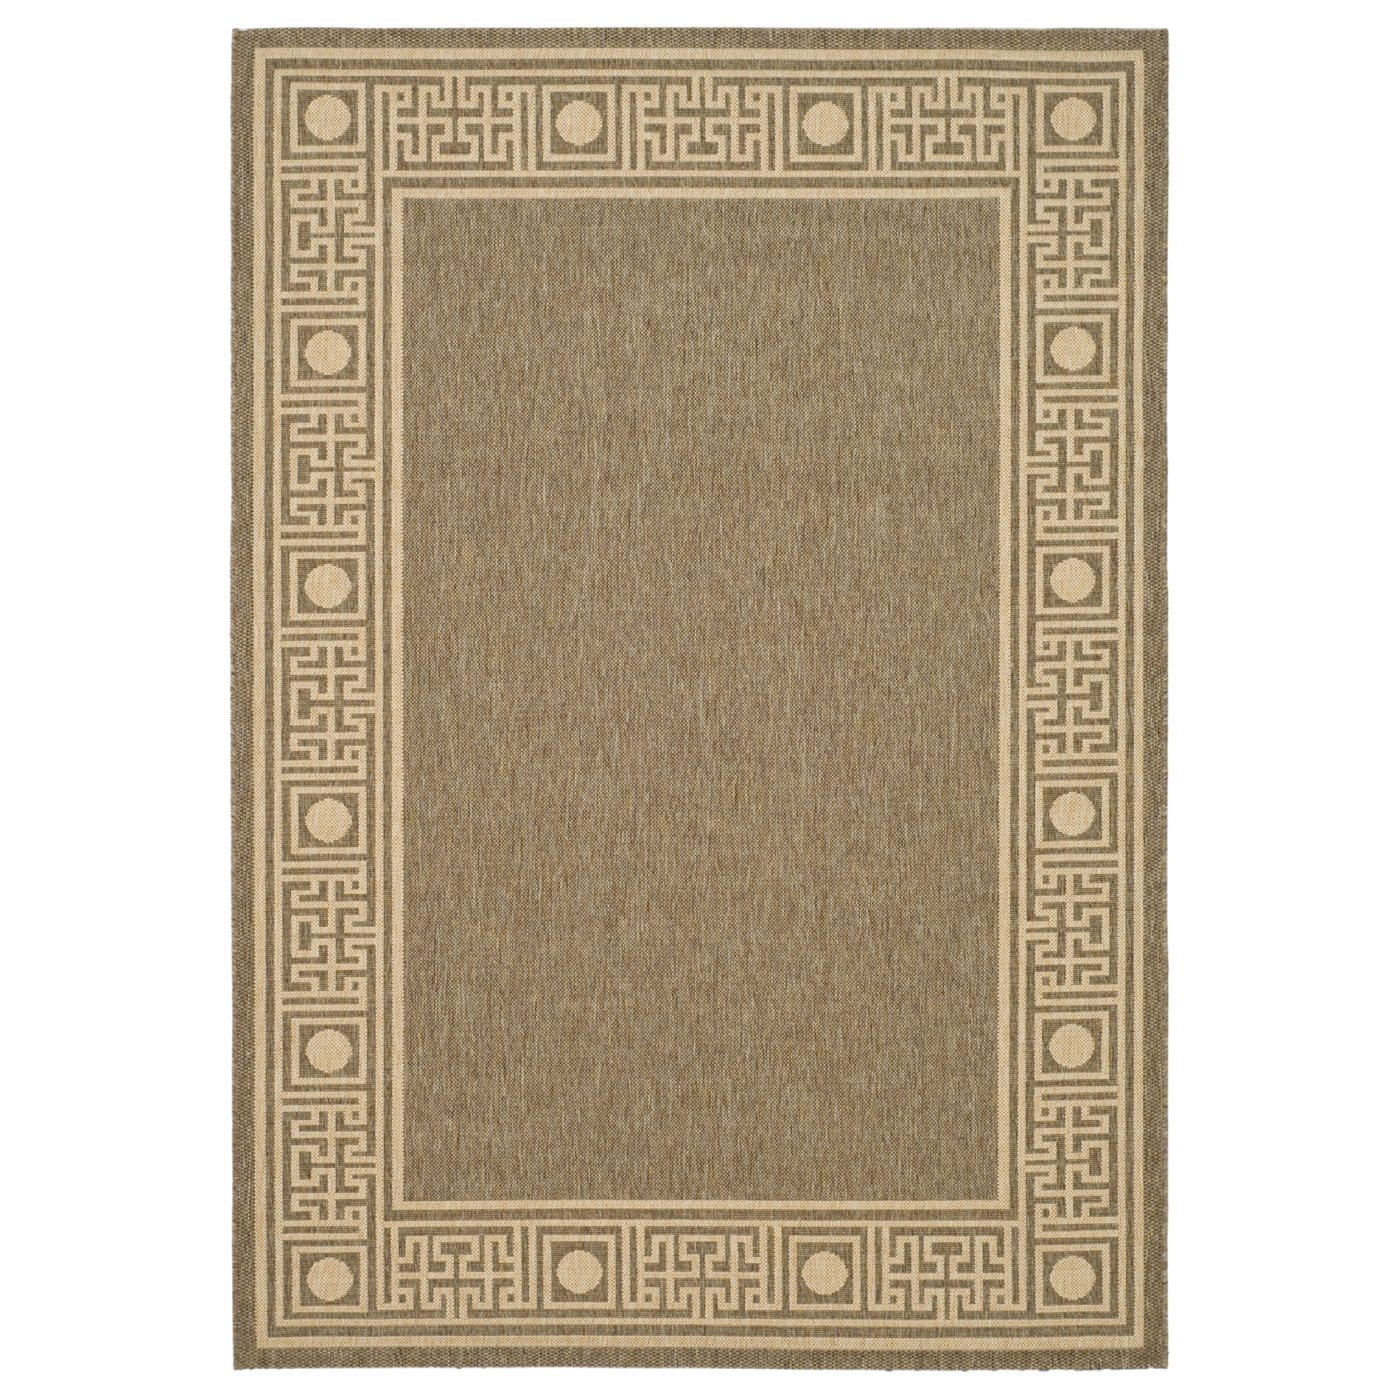 Attractive Indoor Outdoor Carpet for Home Decor Ideas: Fantastic Indoor Outdoor Carpet For Home Decor Ideas With Home Depot Indoor Outdoor Carpet